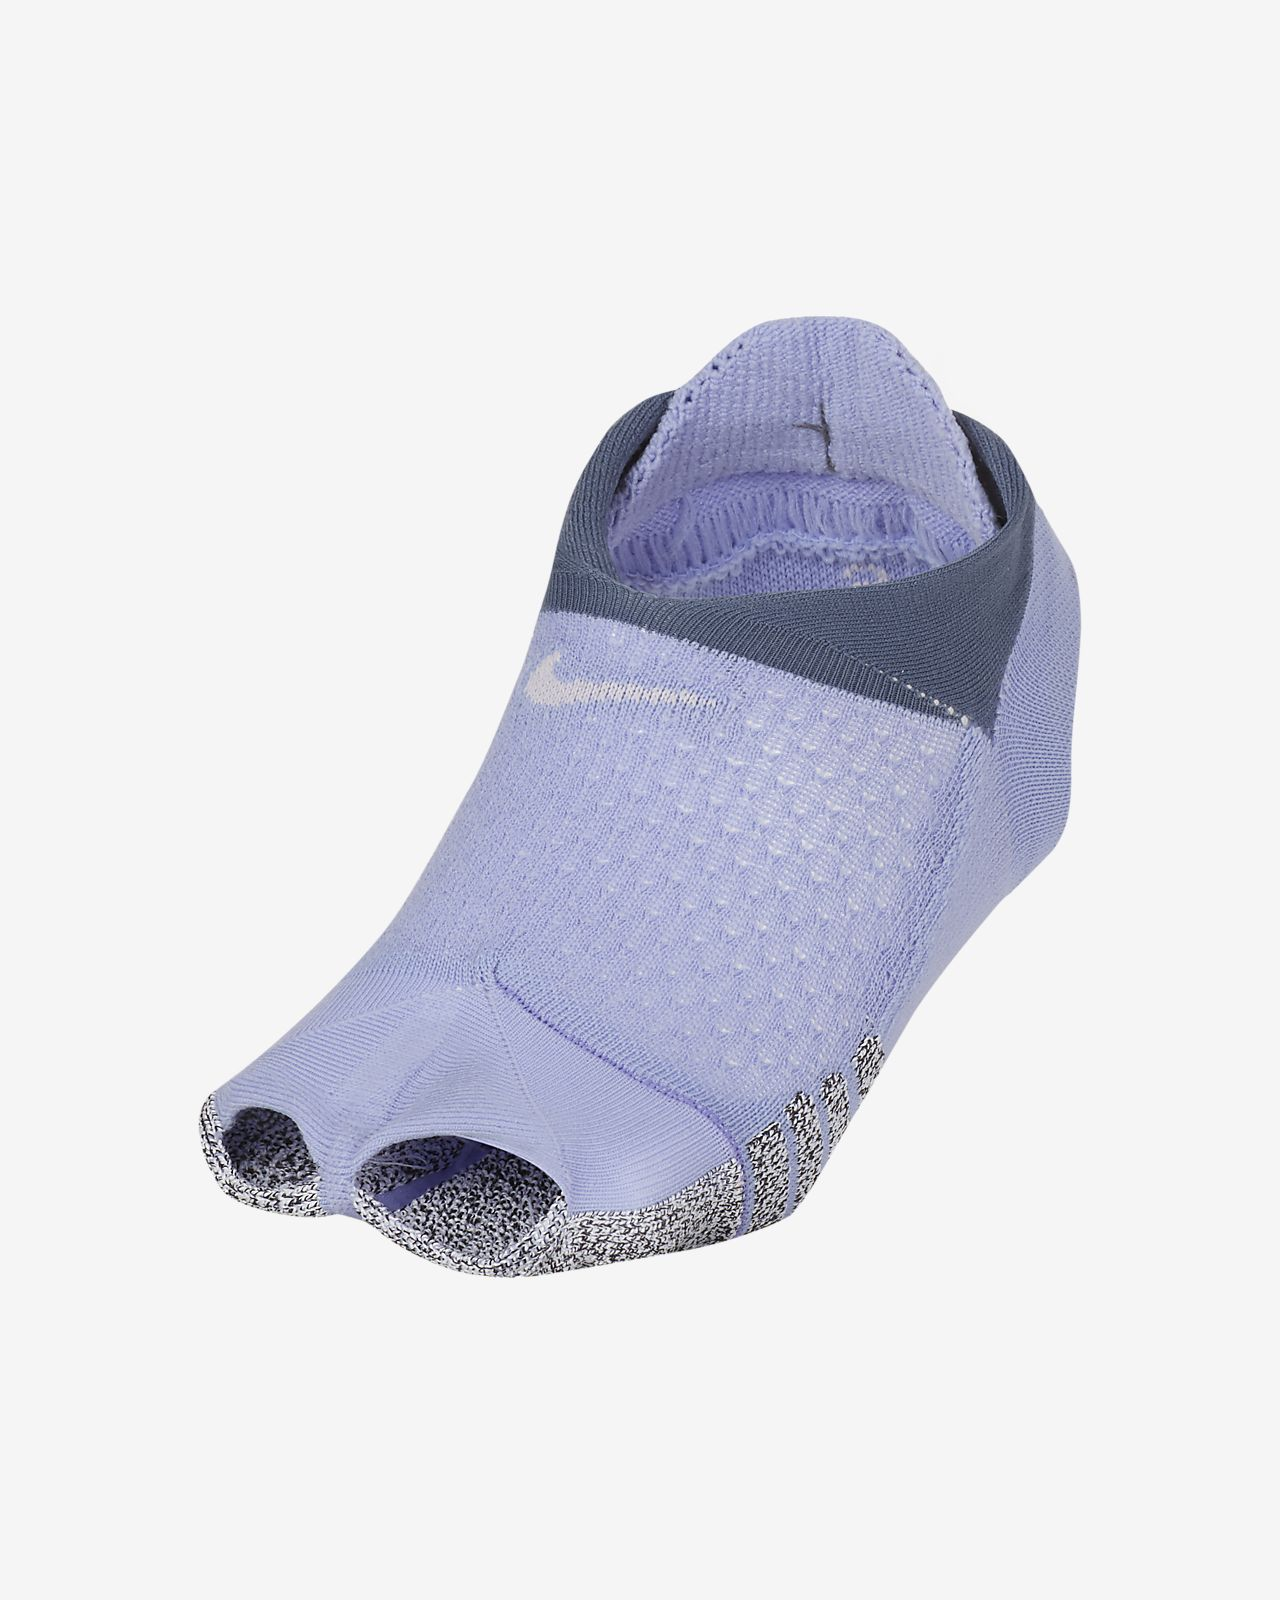 NikeGrip Studio Women's Toeless Footie Socks